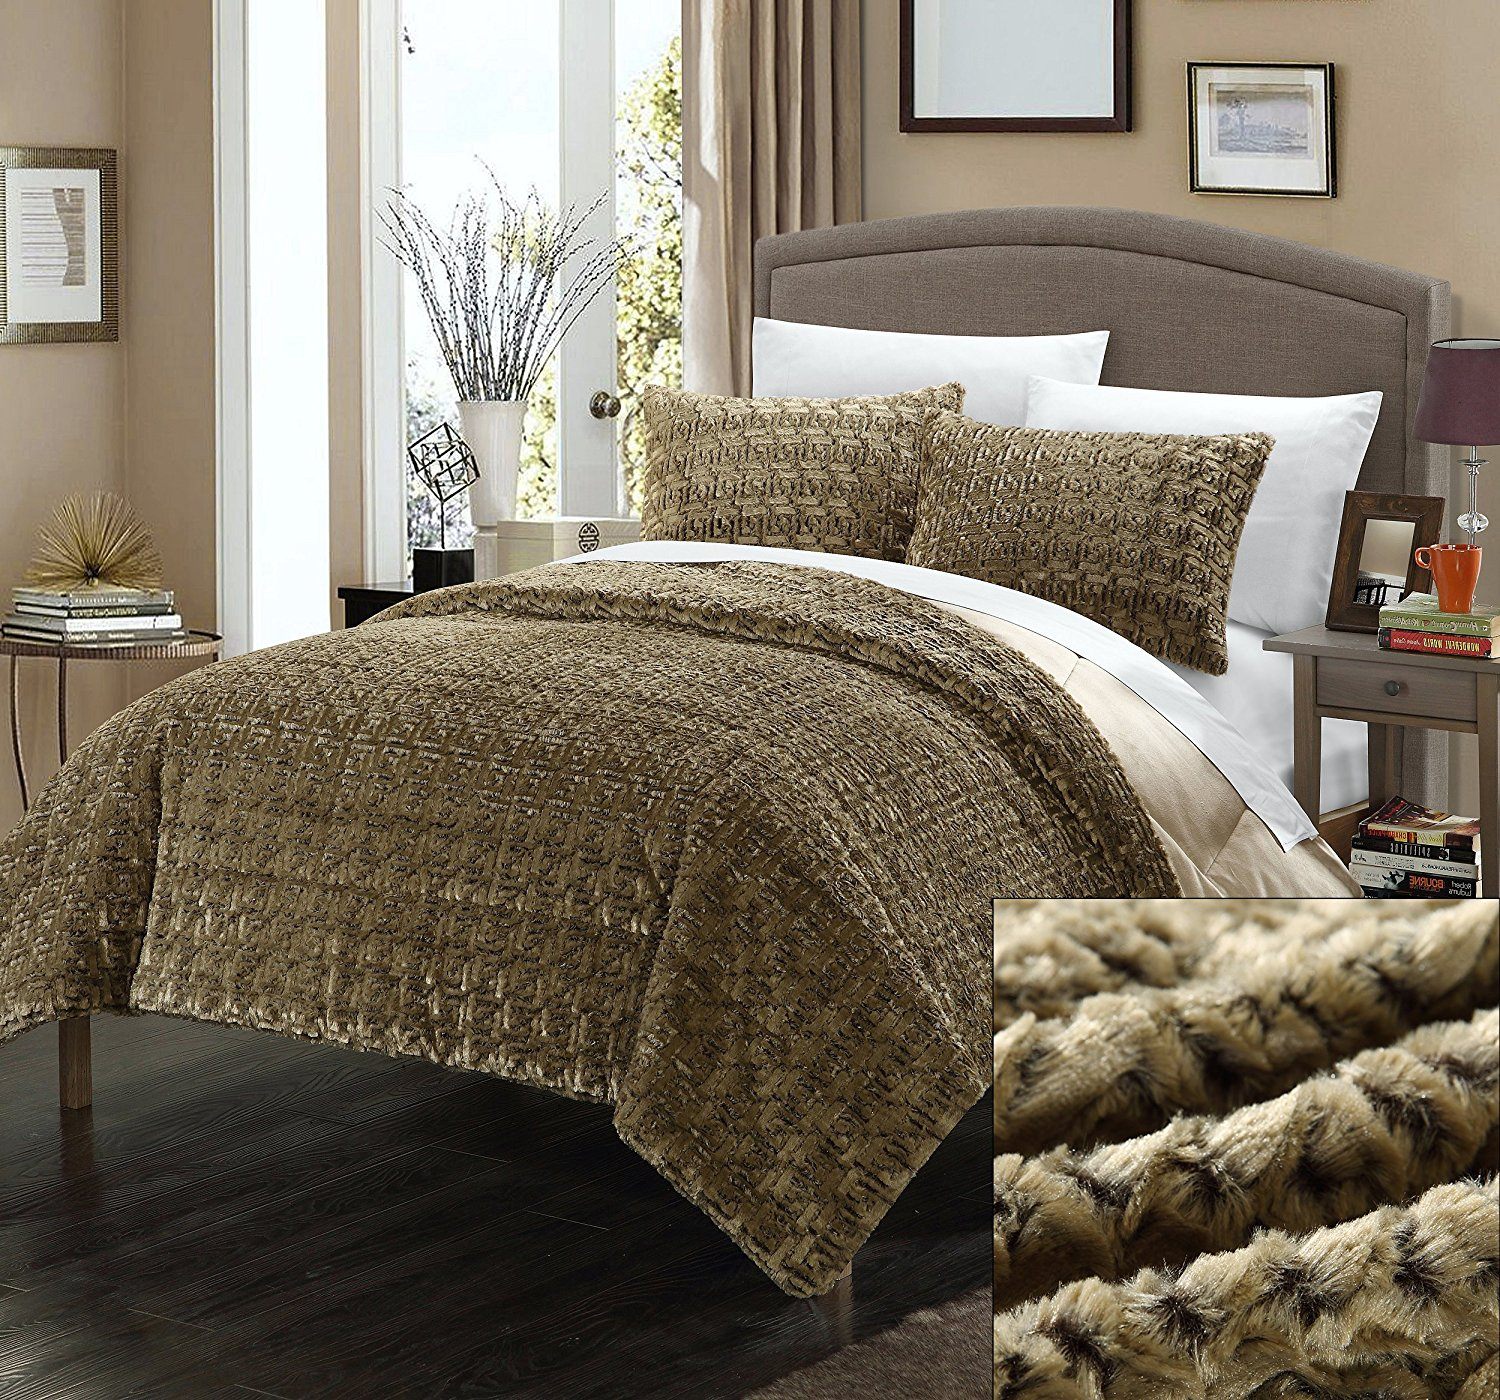 comforter cannon fur getimage faux brown way online your url shop shopping shld